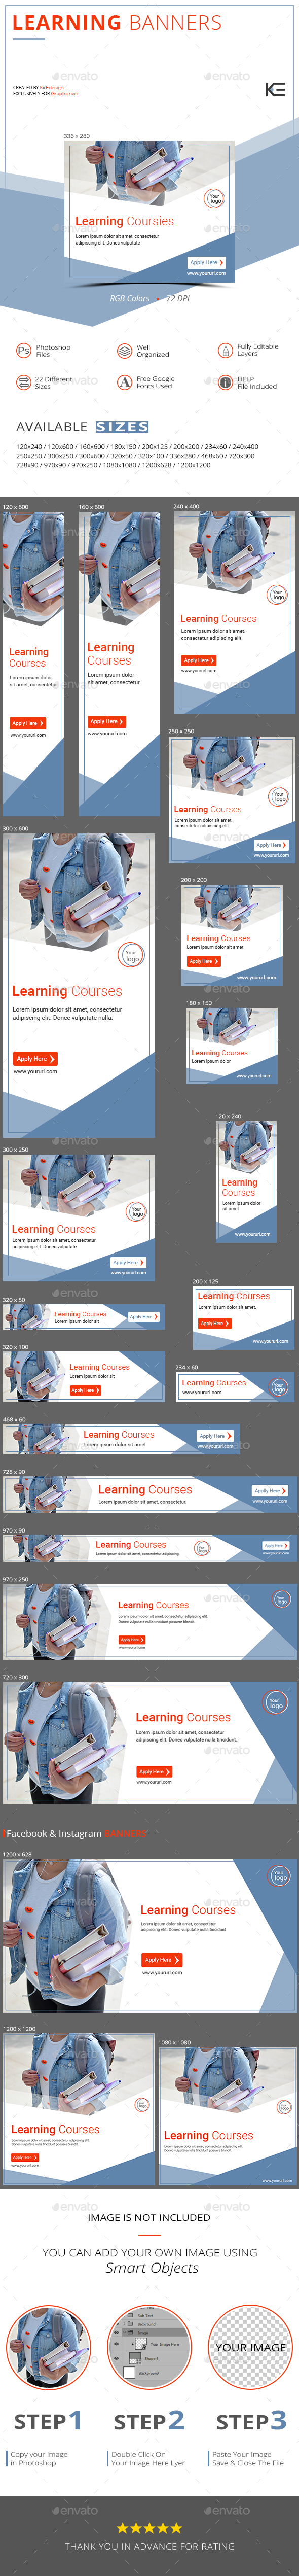 Learning Banners - Banners & Ads Web Elements